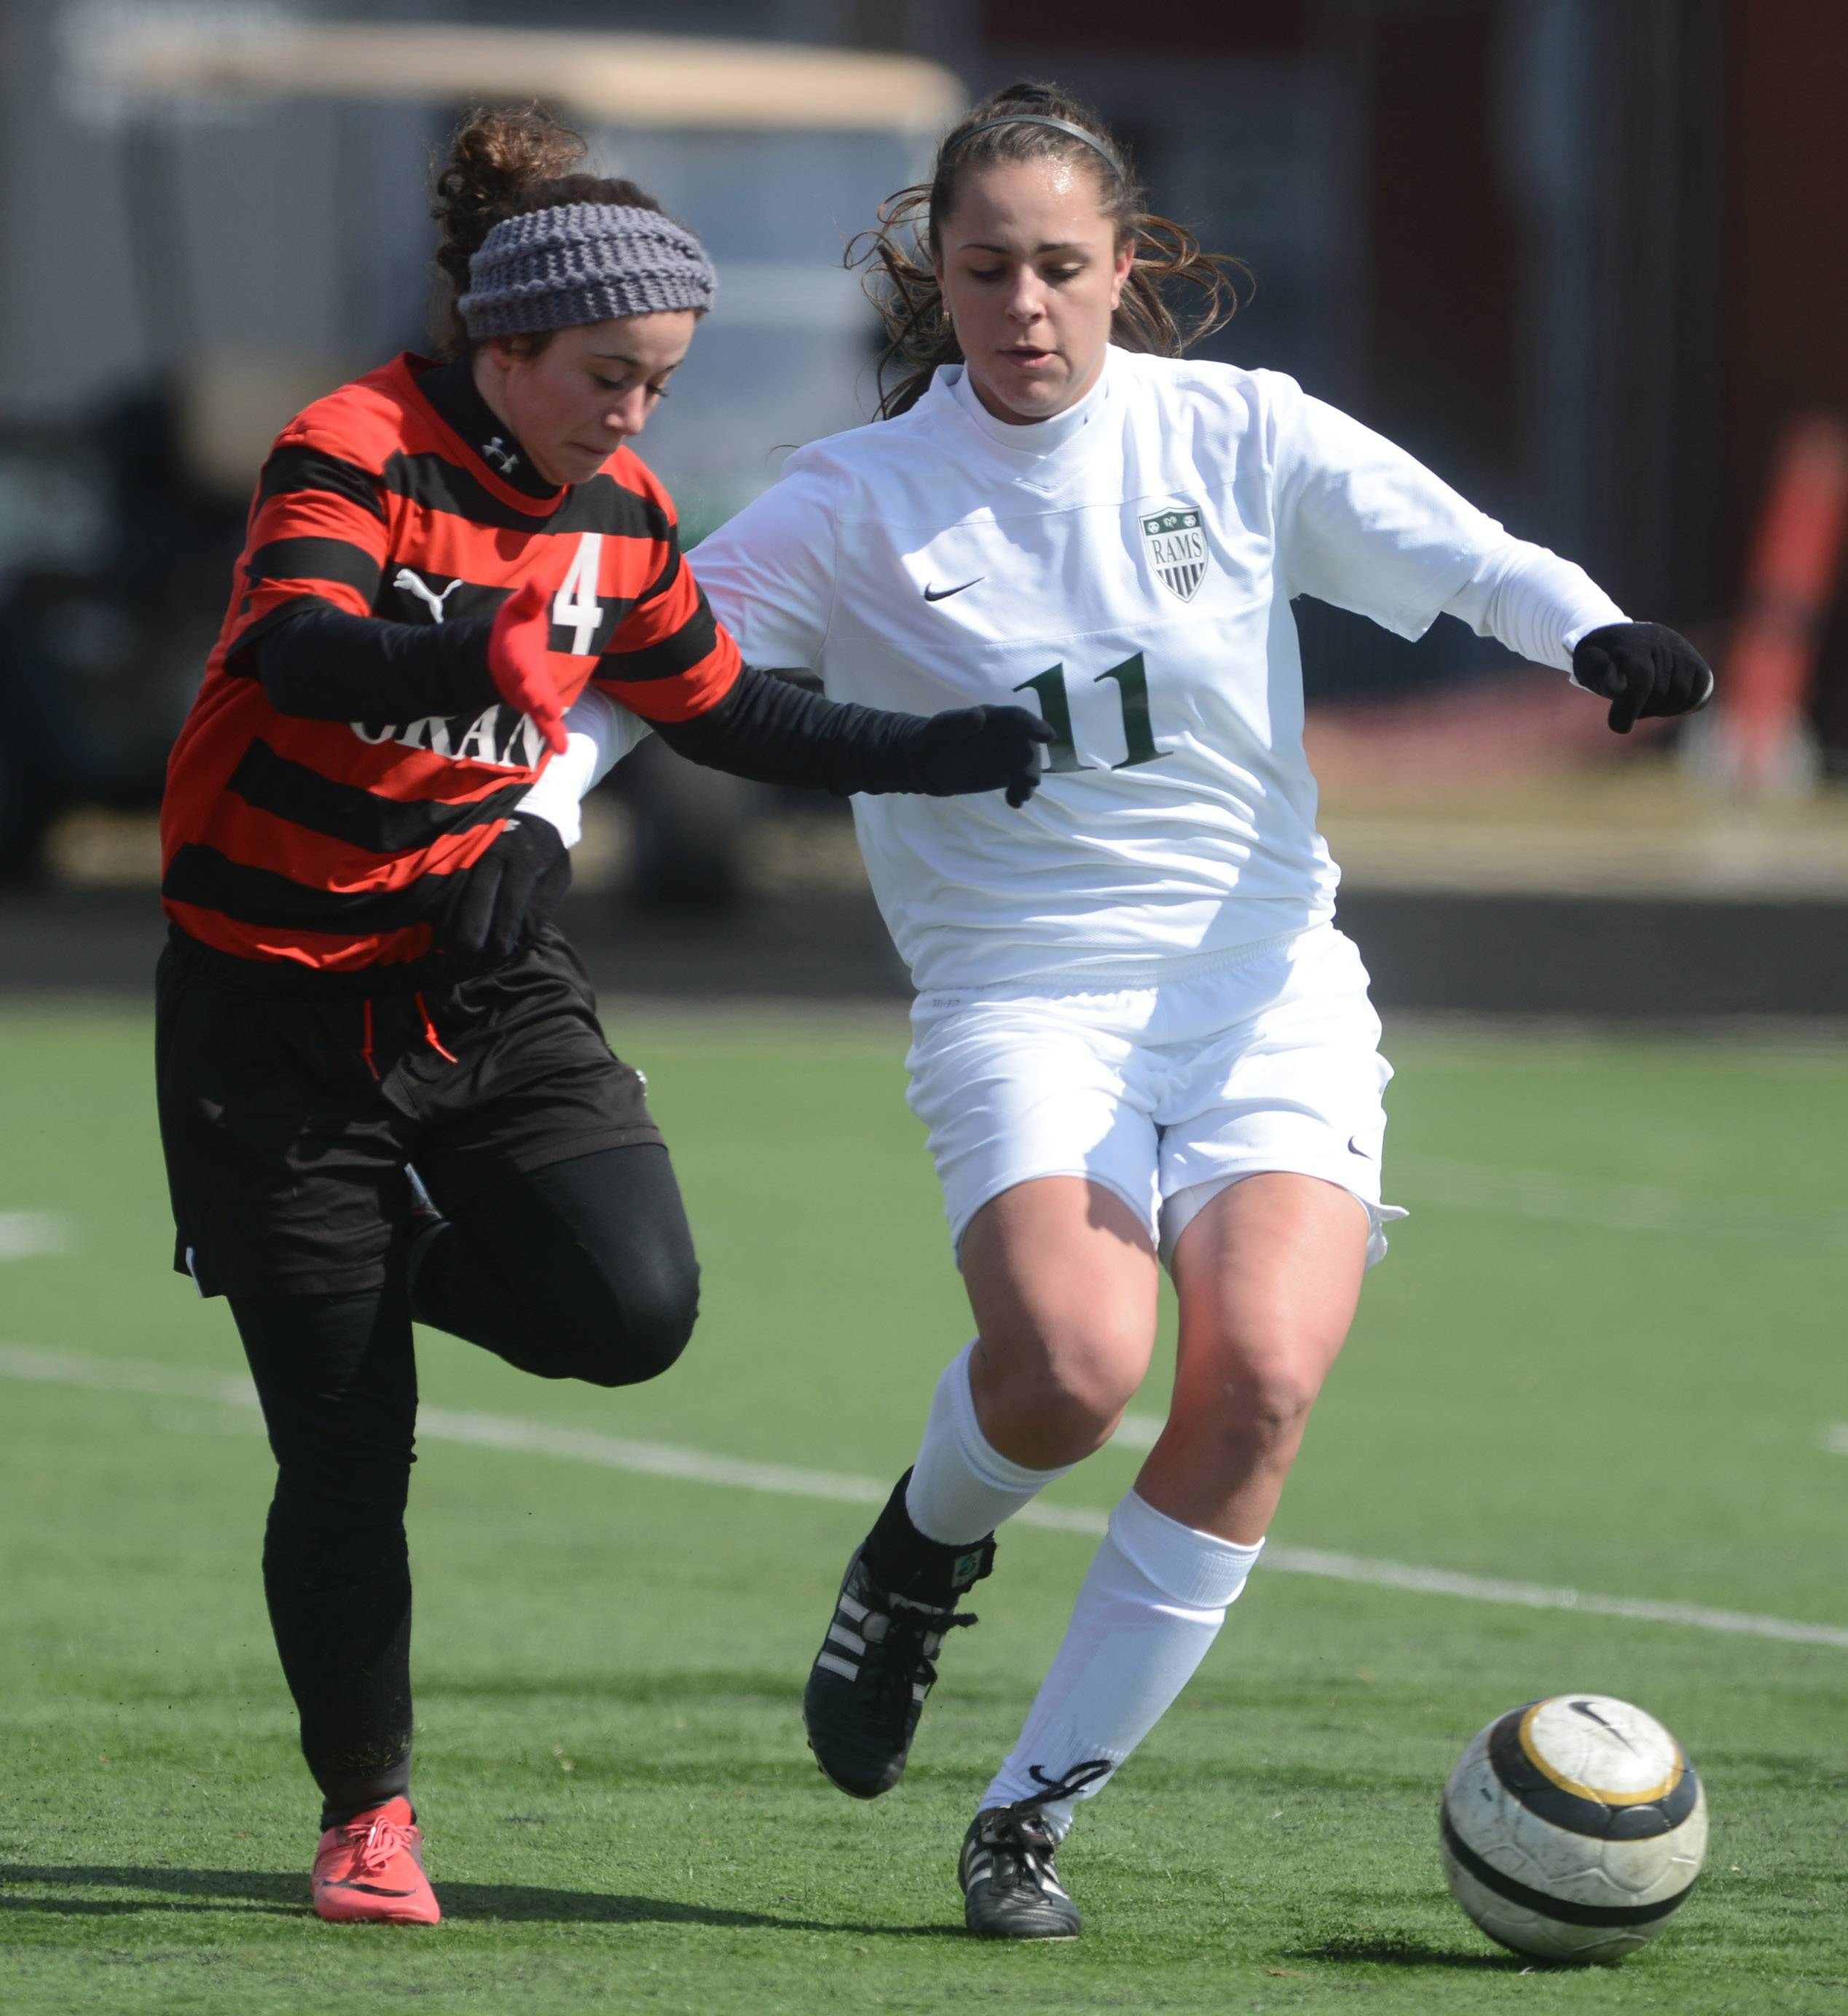 Grant's Nina Deligio (4) chases down the loose ball with Grayslake Central's Carson Sparkman during Tuesday's soccer game in Grayslake.